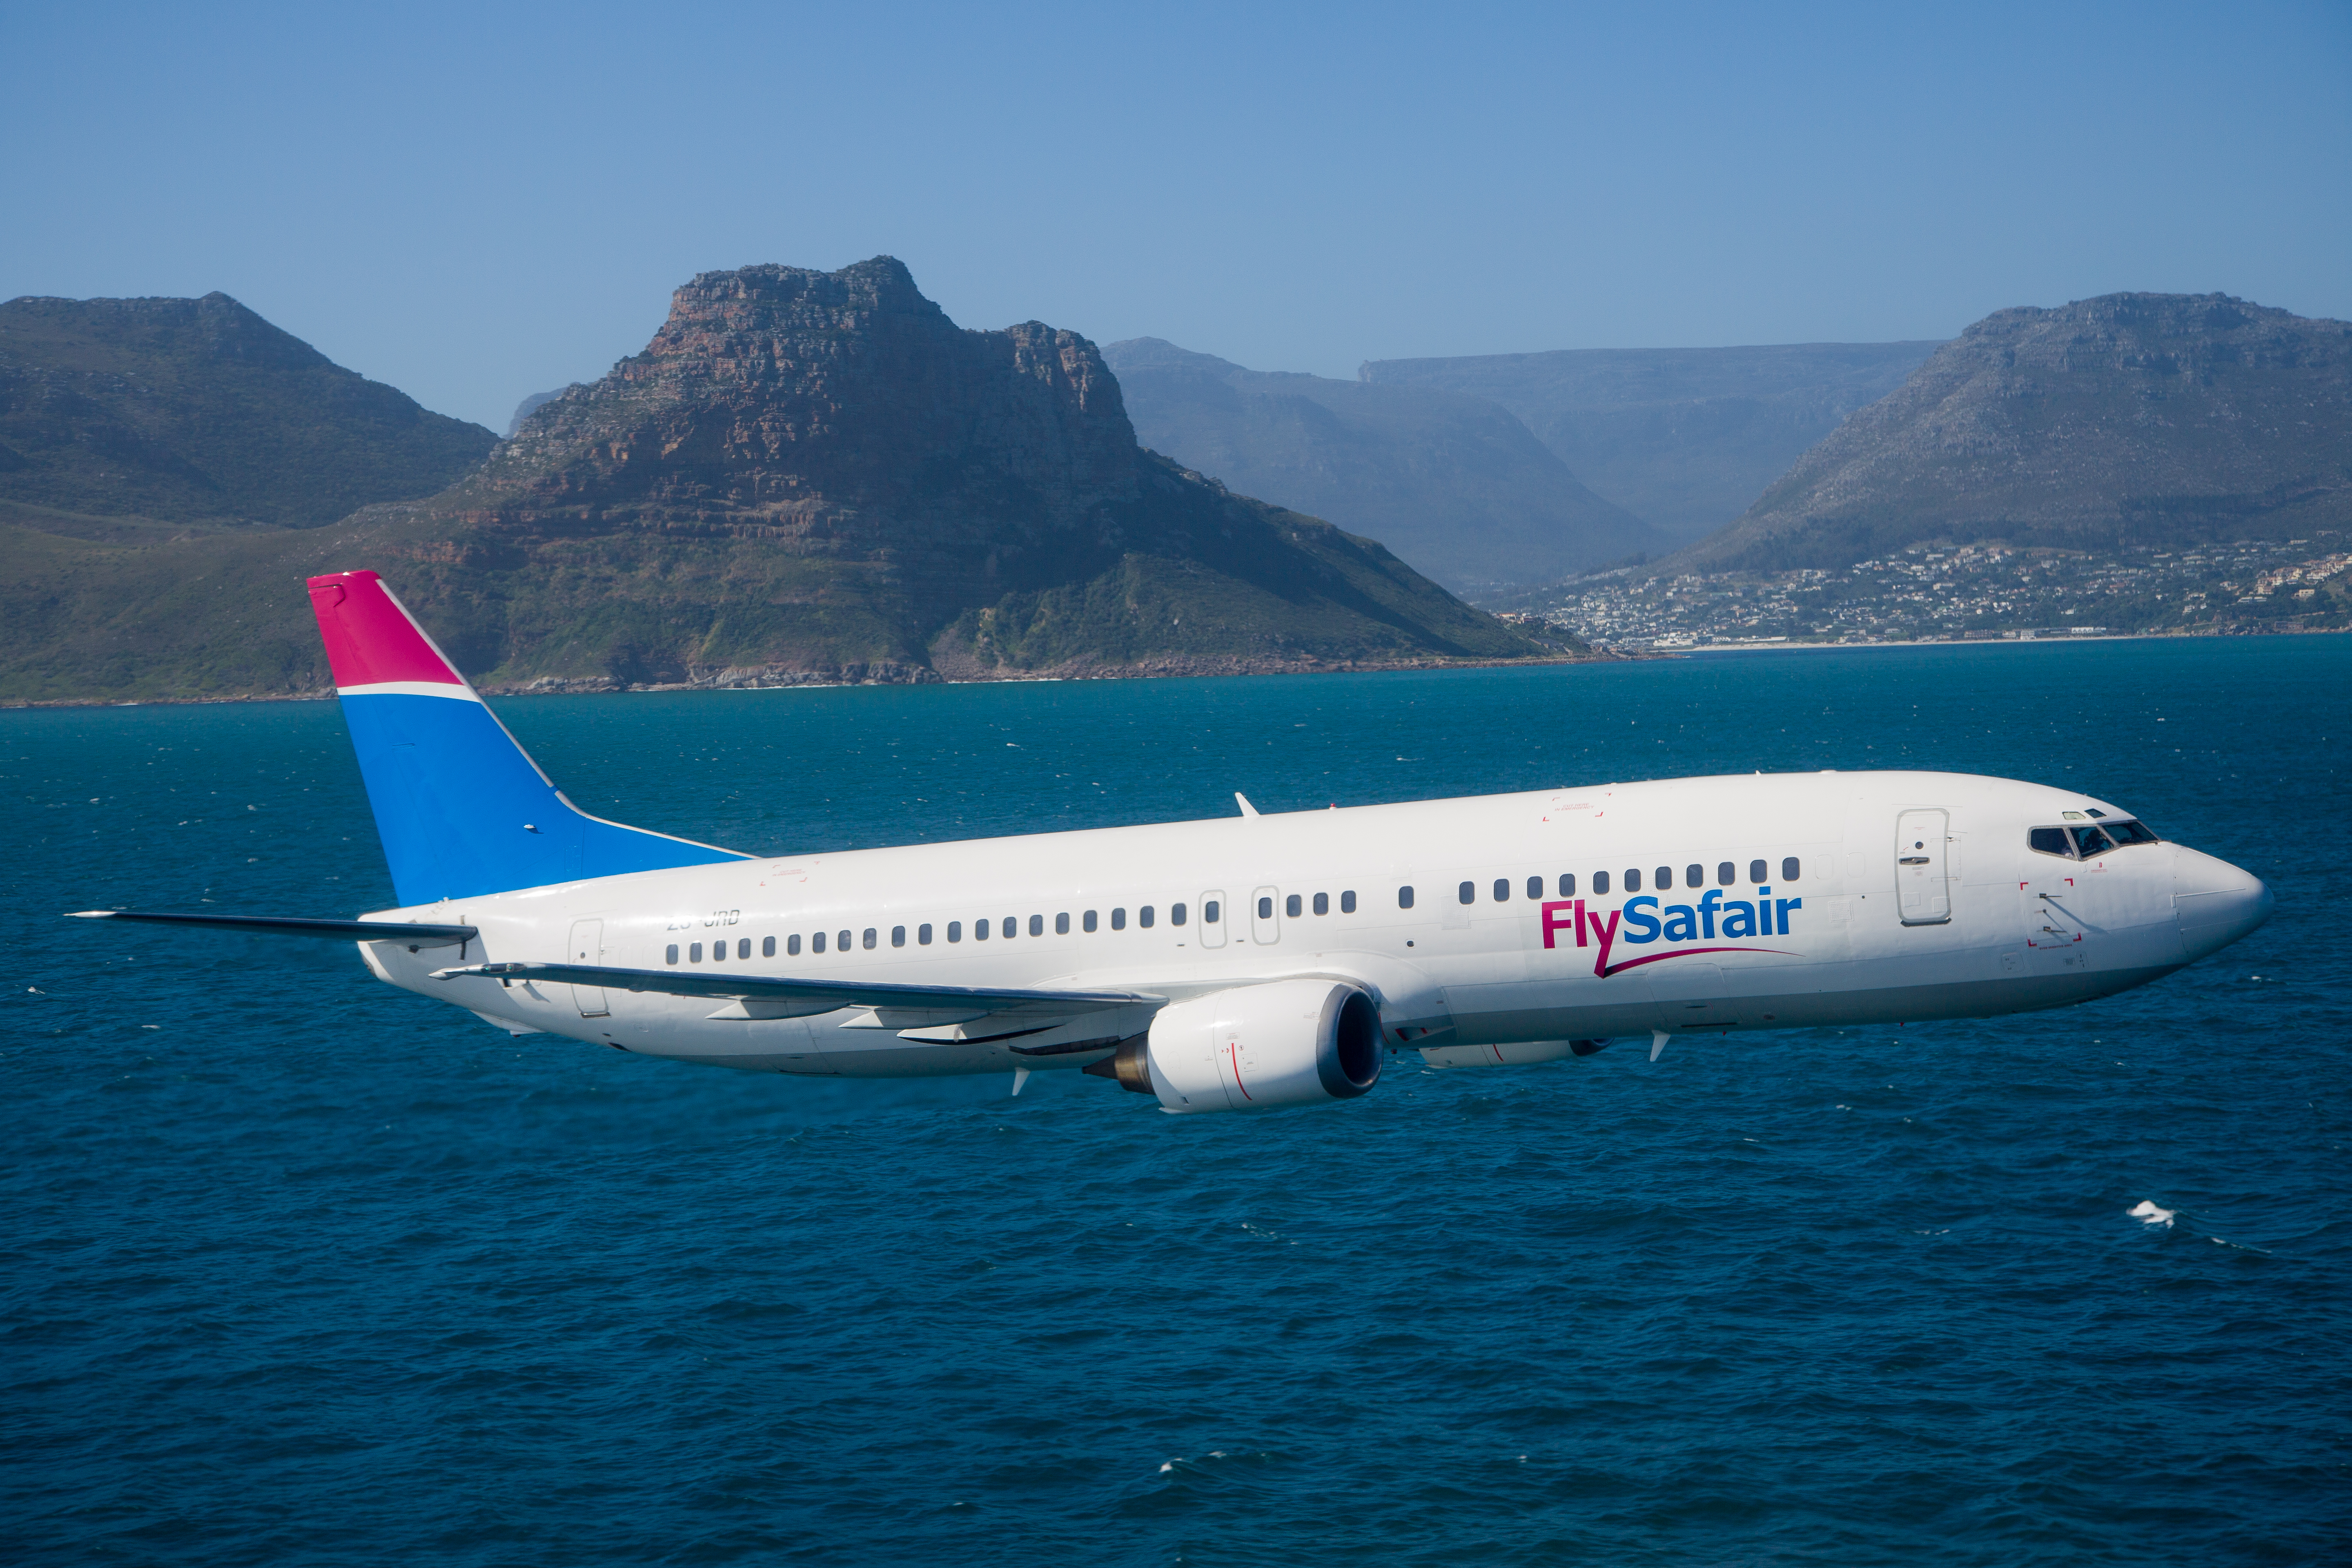 FlySafair Airplane In Cape Town